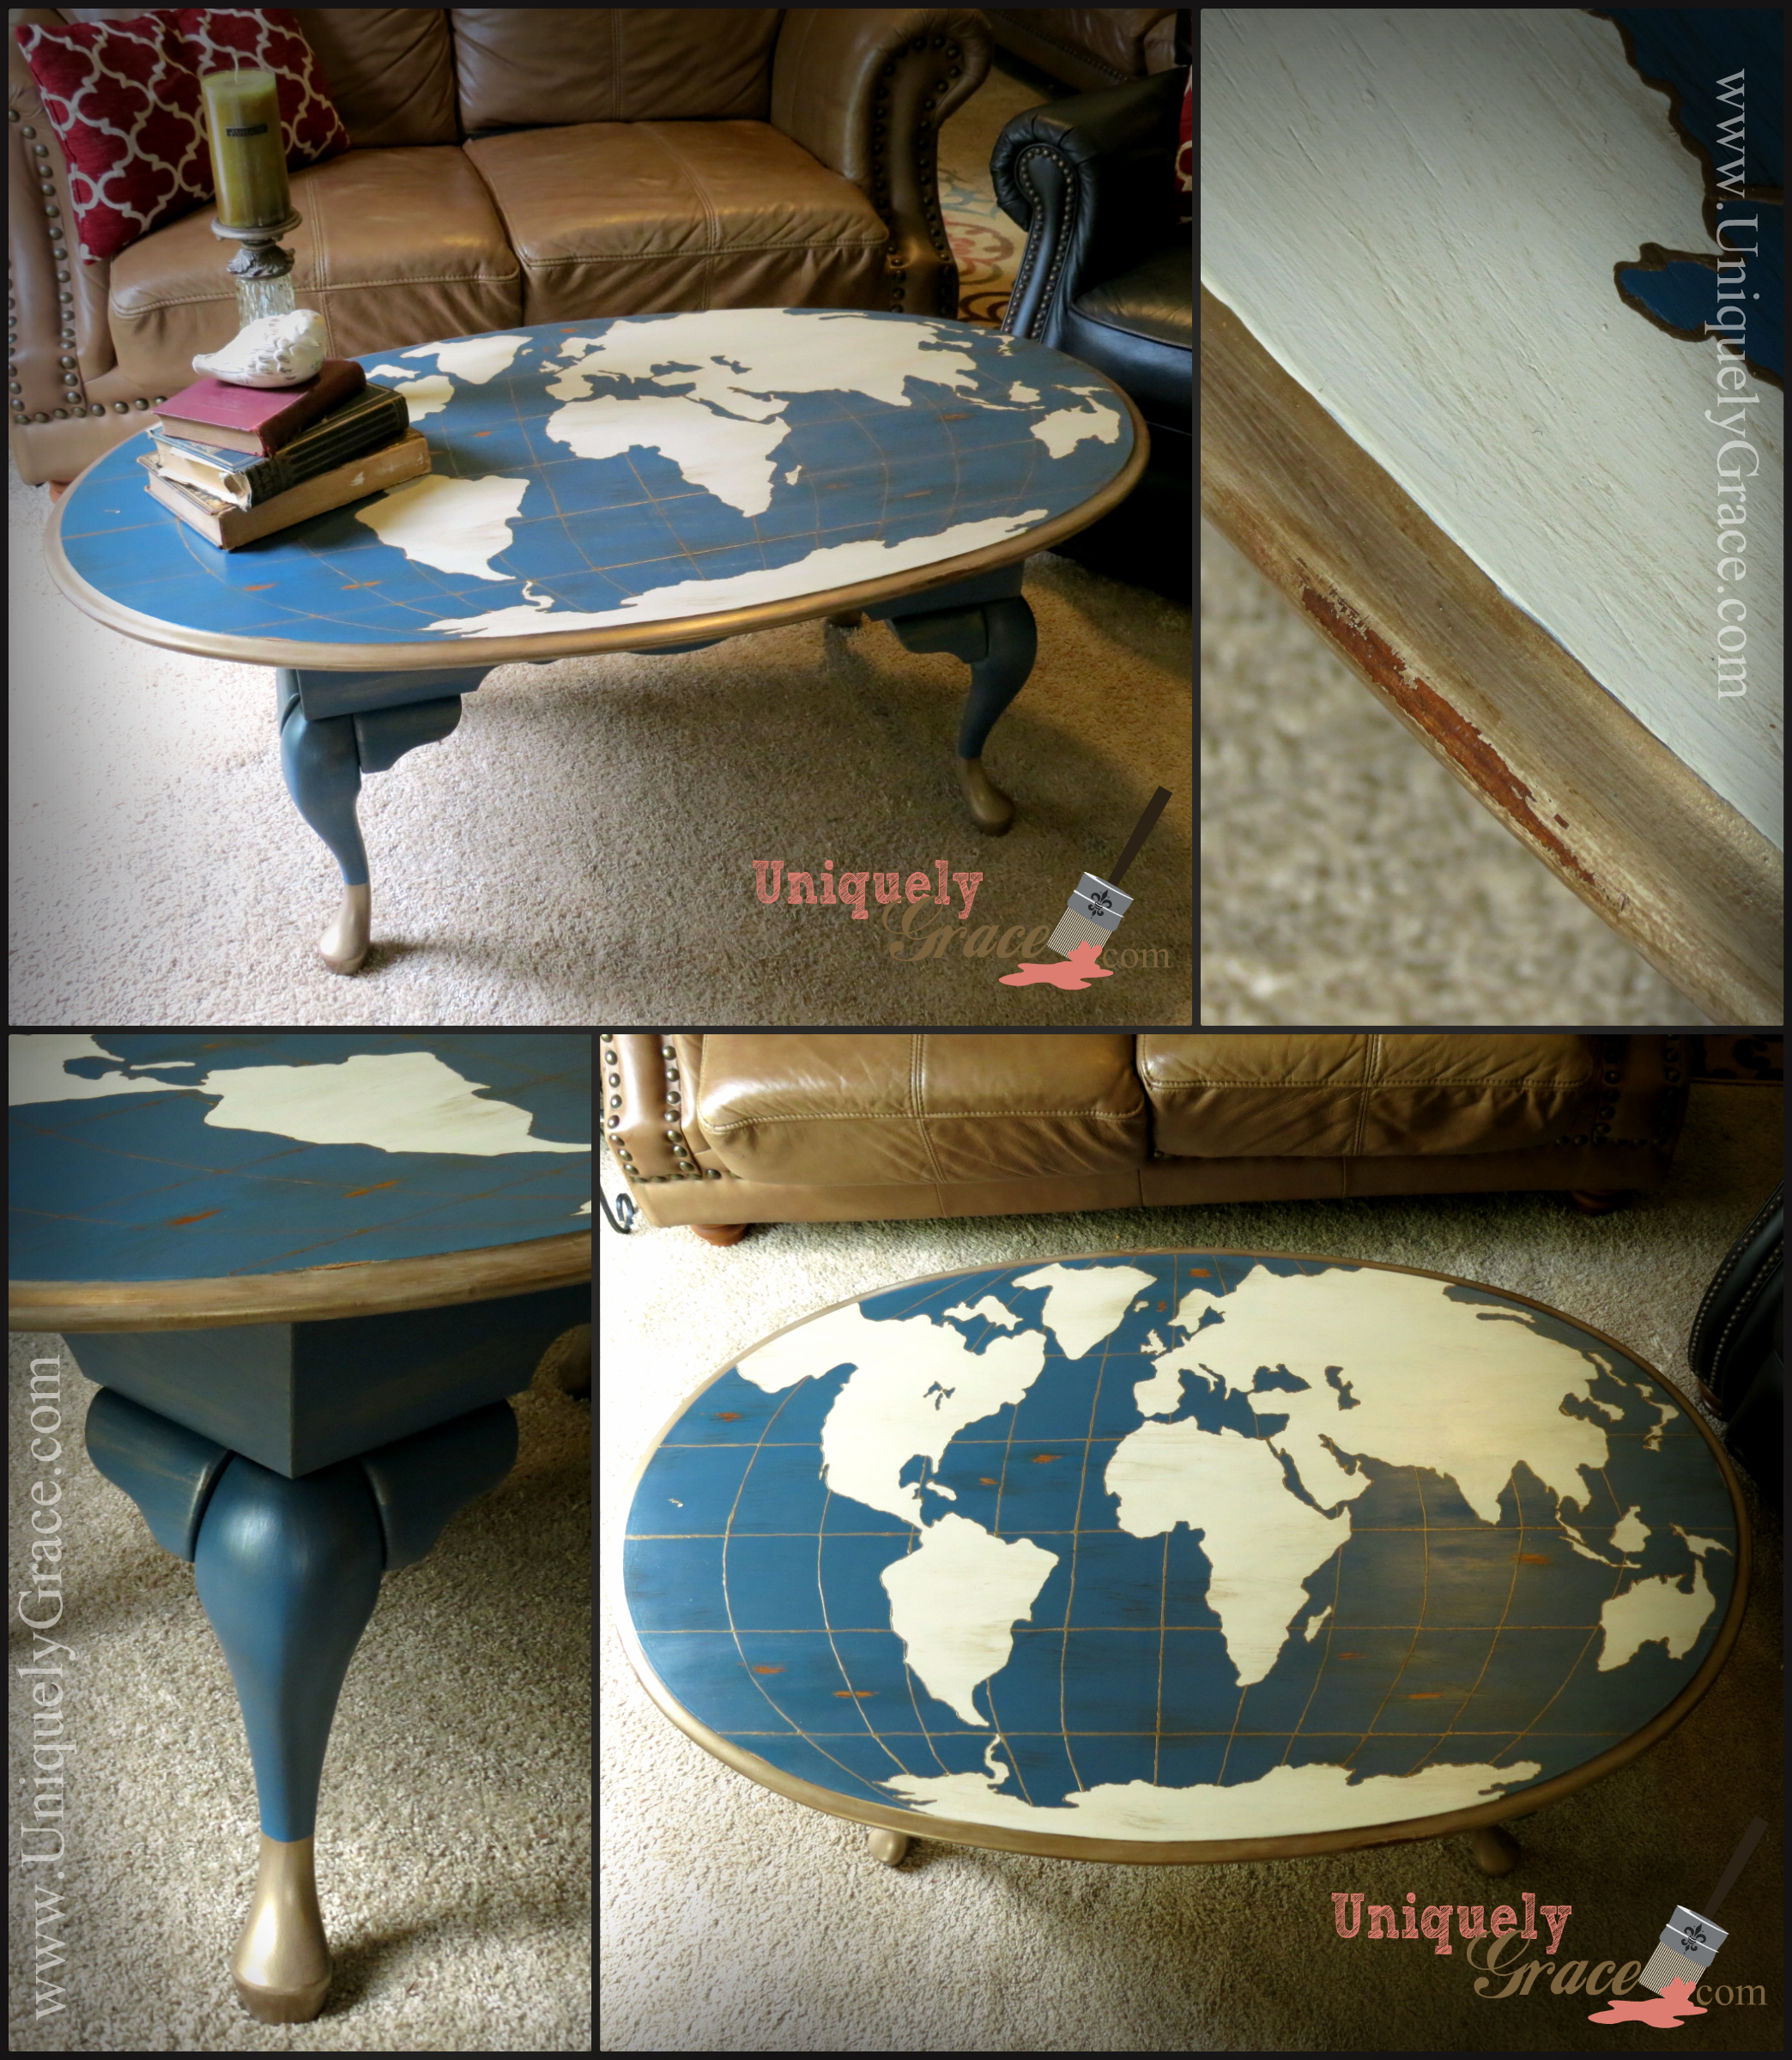 Globe Coffee Table free hand chalk painted work in progress cre8time uniquely grace lauger